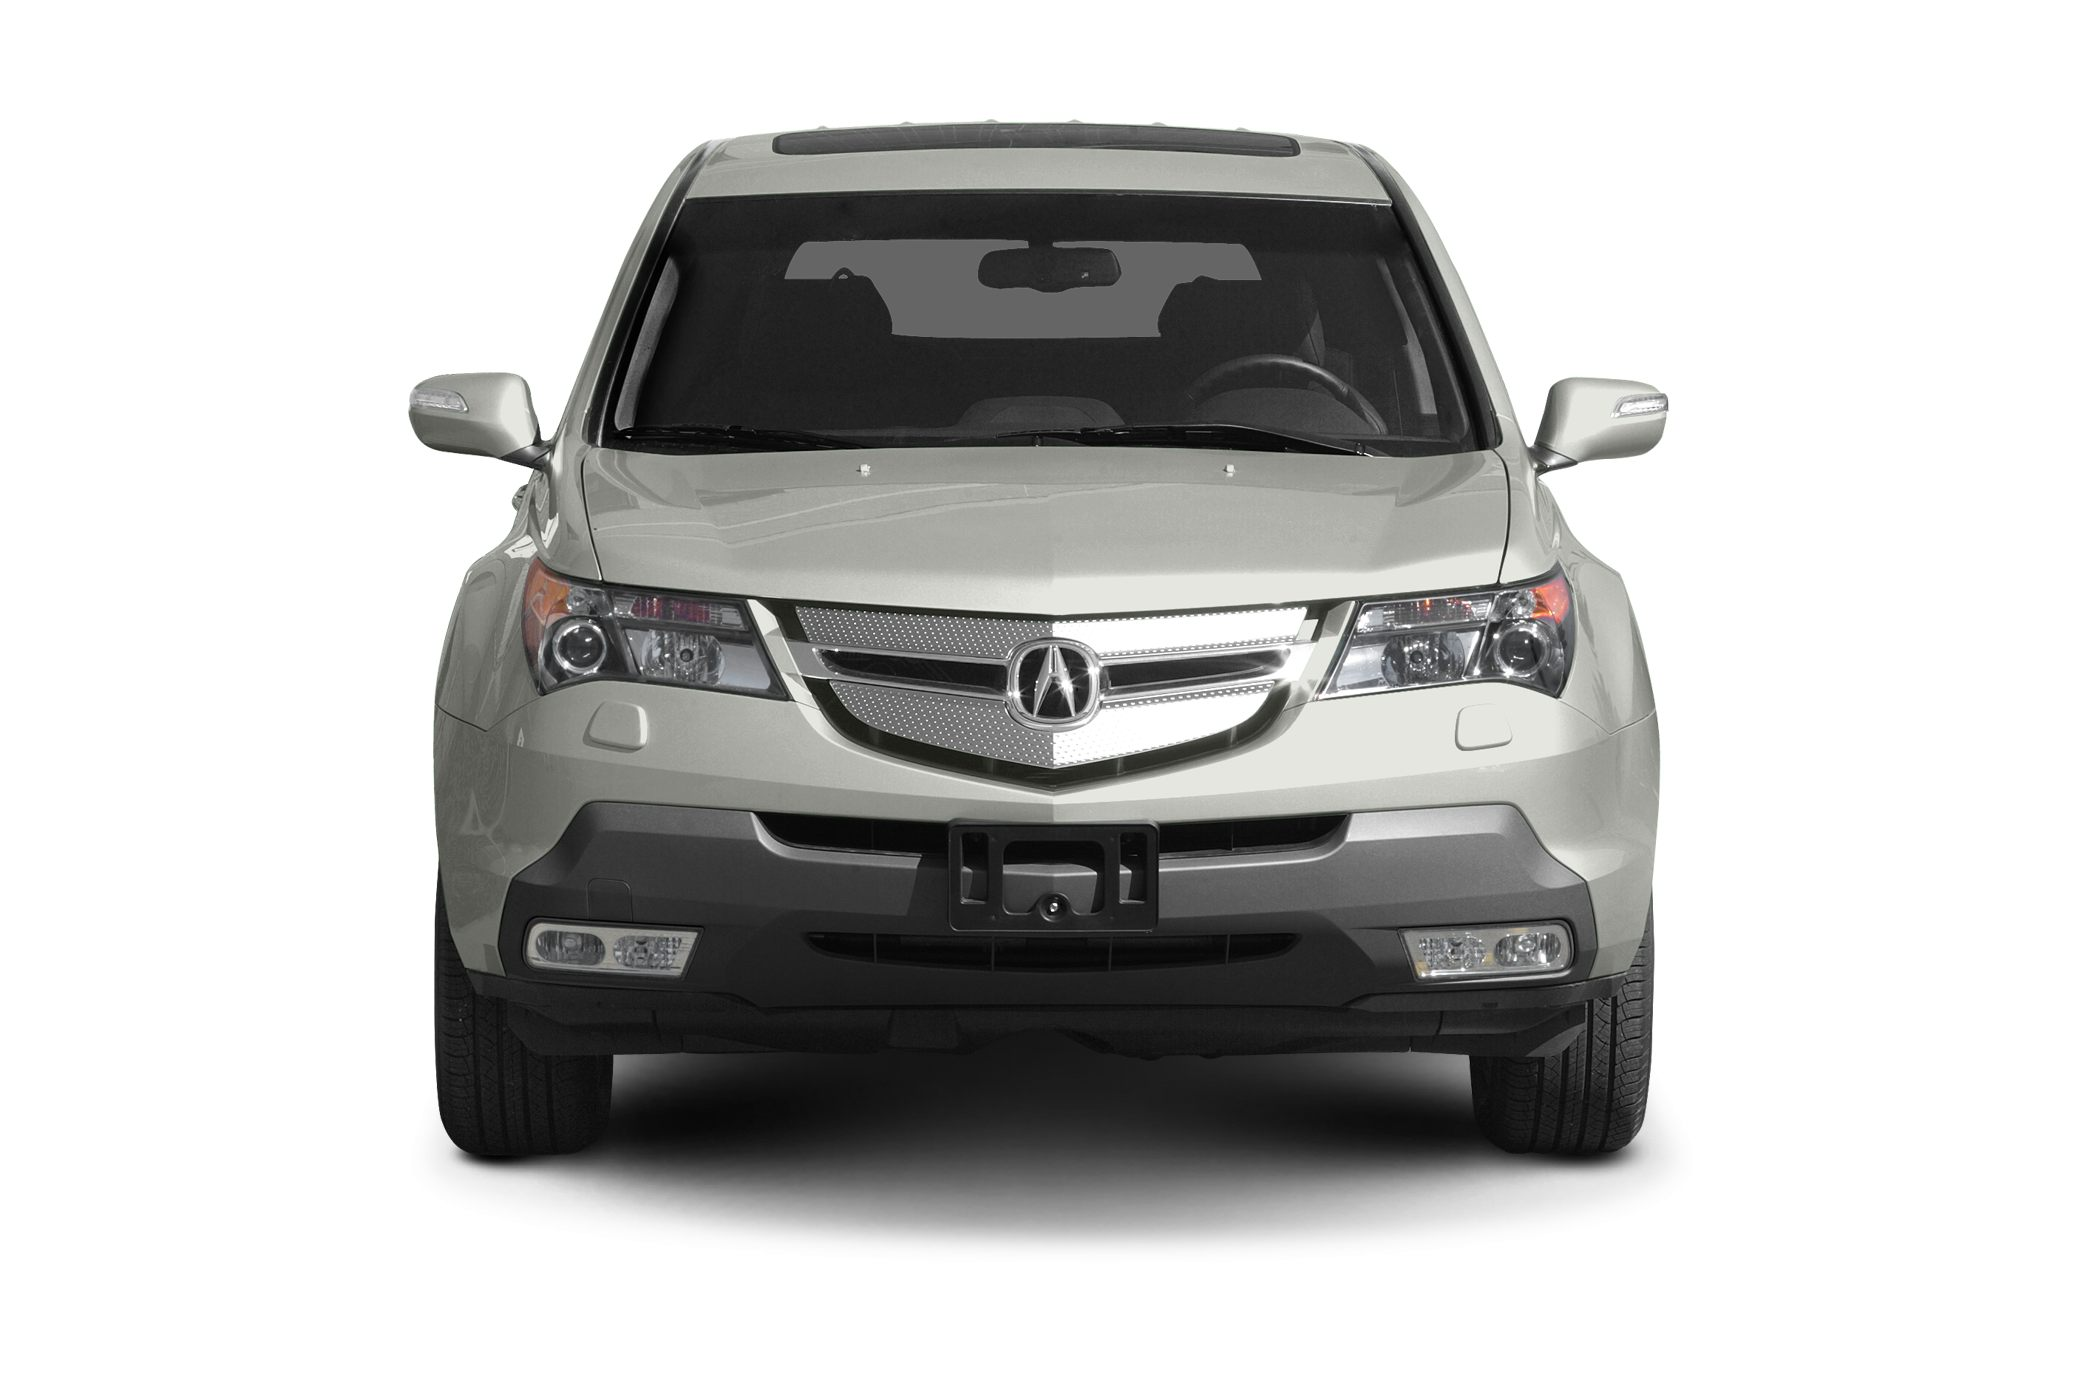 2011 Acura  on 2009 Acura Mdx For Sale   Review And Rating   Carsdirect